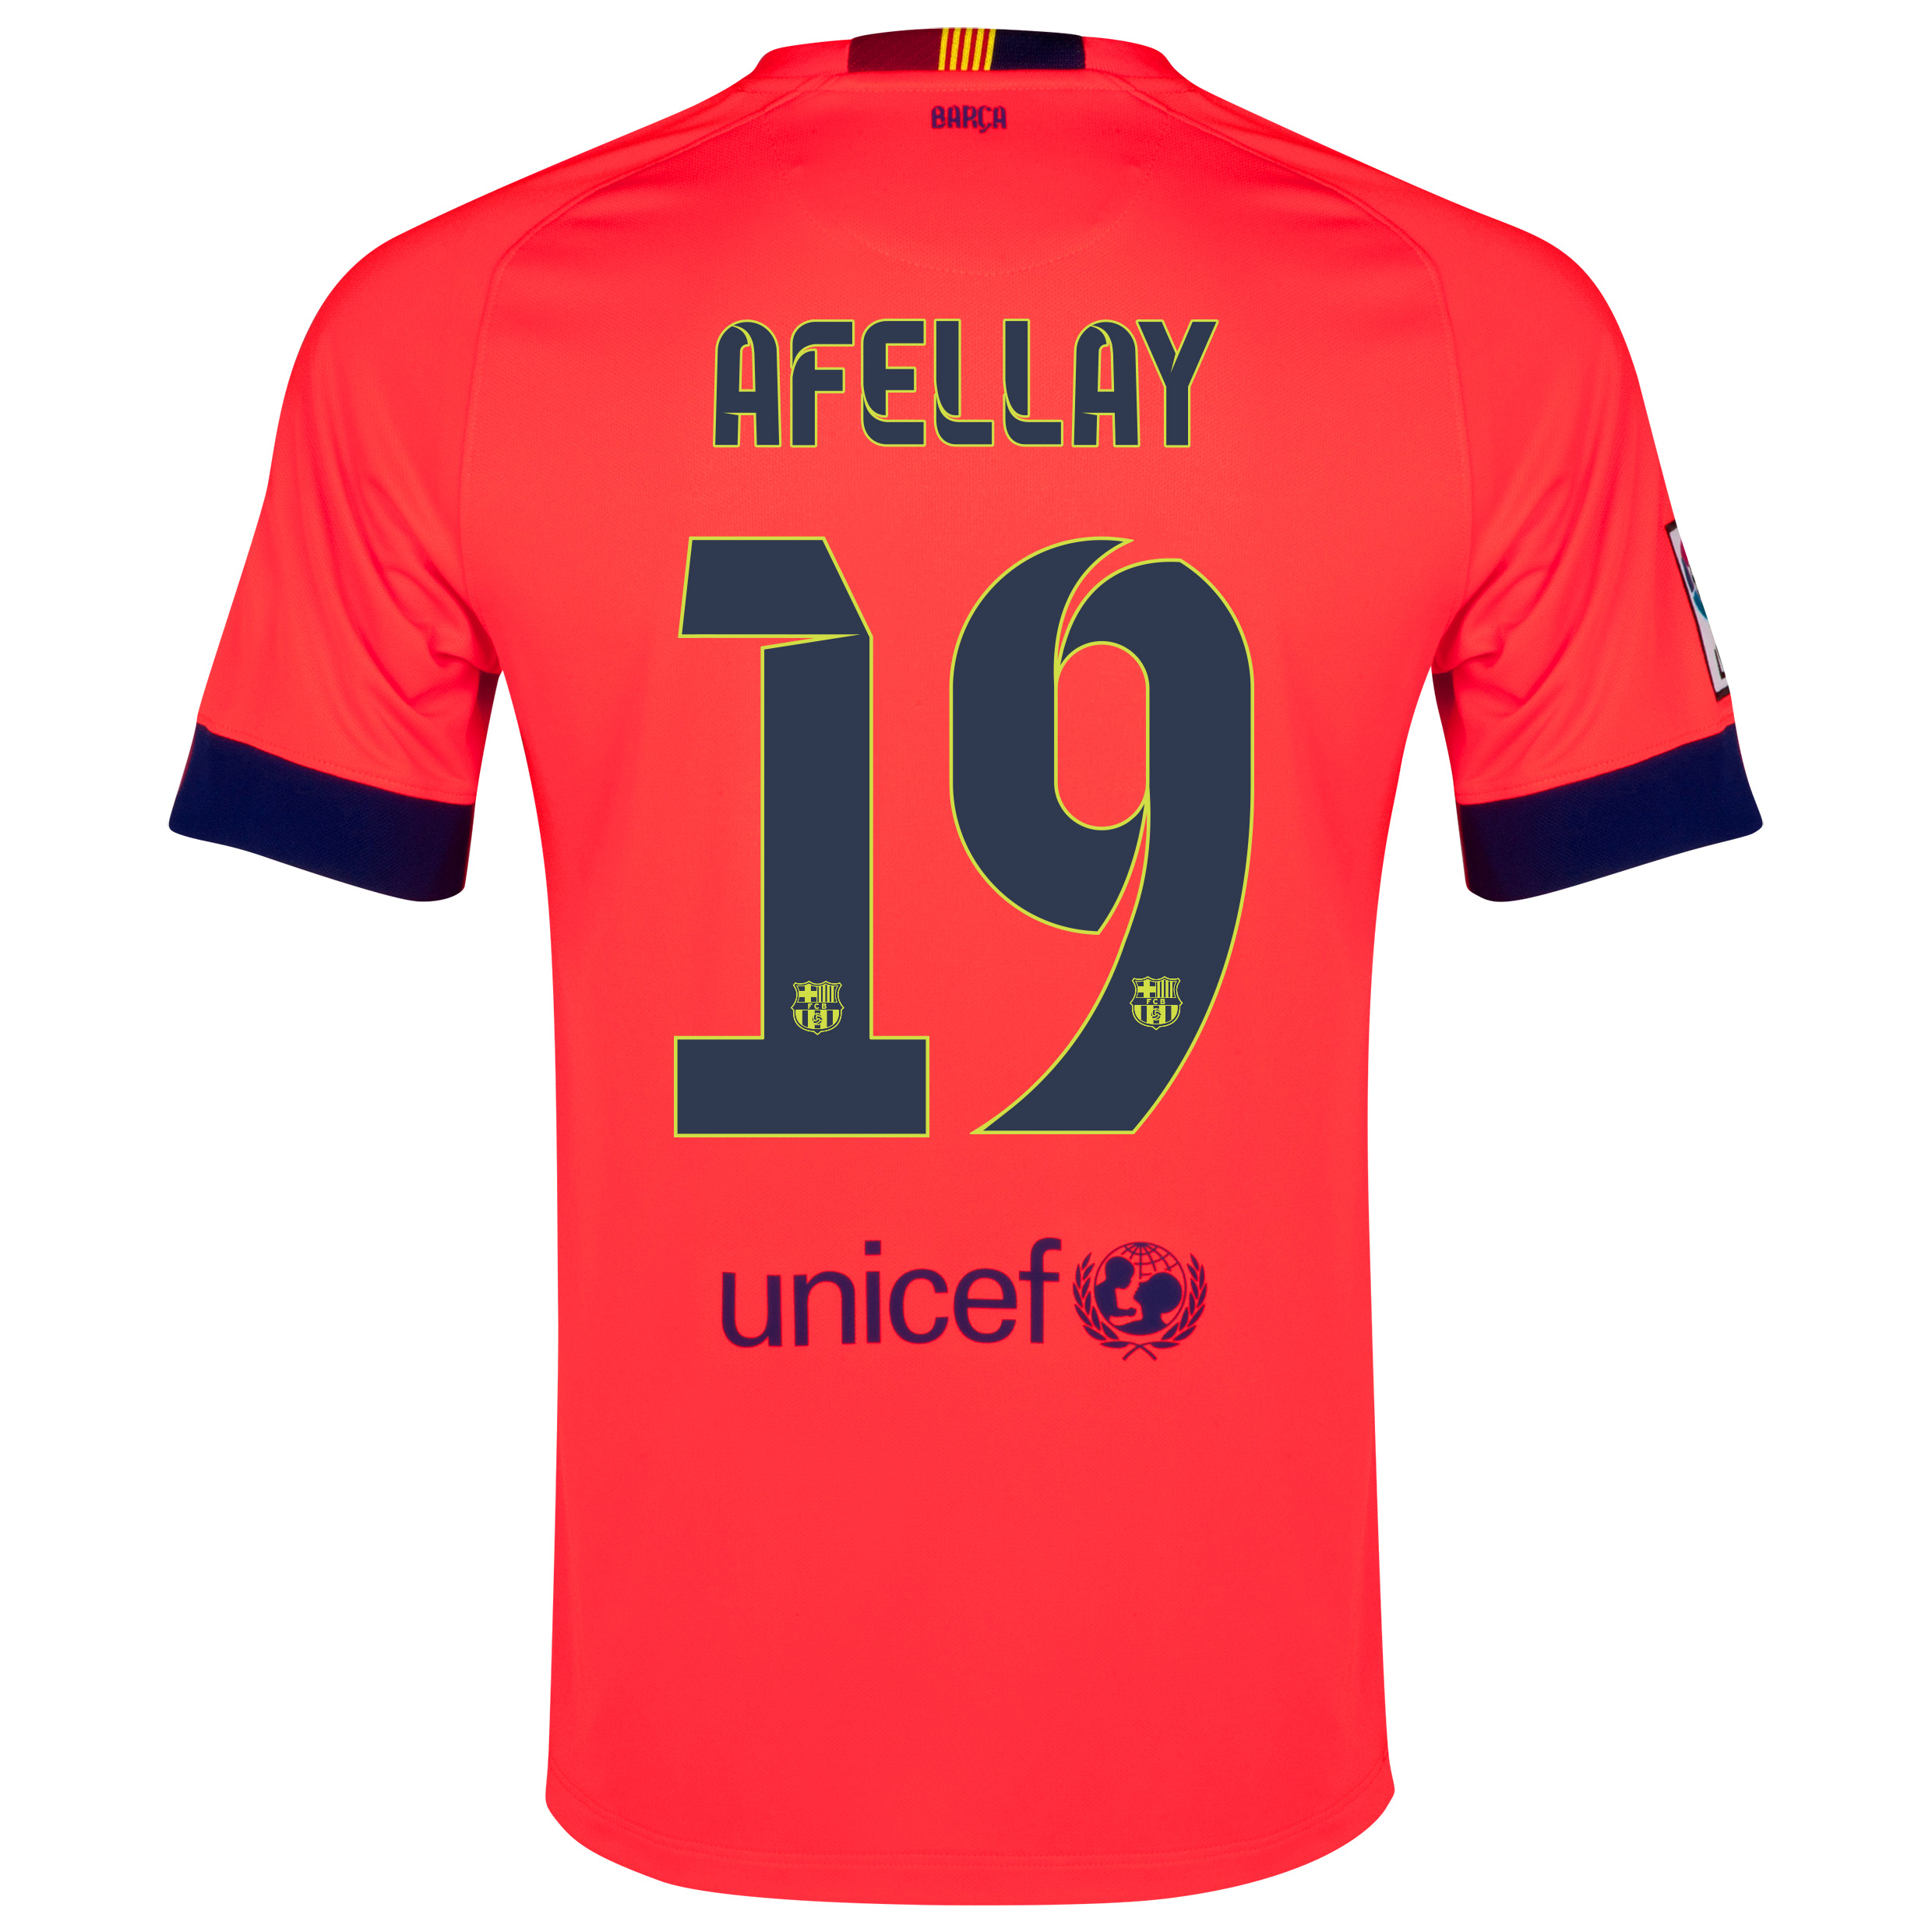 Barcelona Away Shirt 2014/15 - Kids Red with Afellay 19 printing